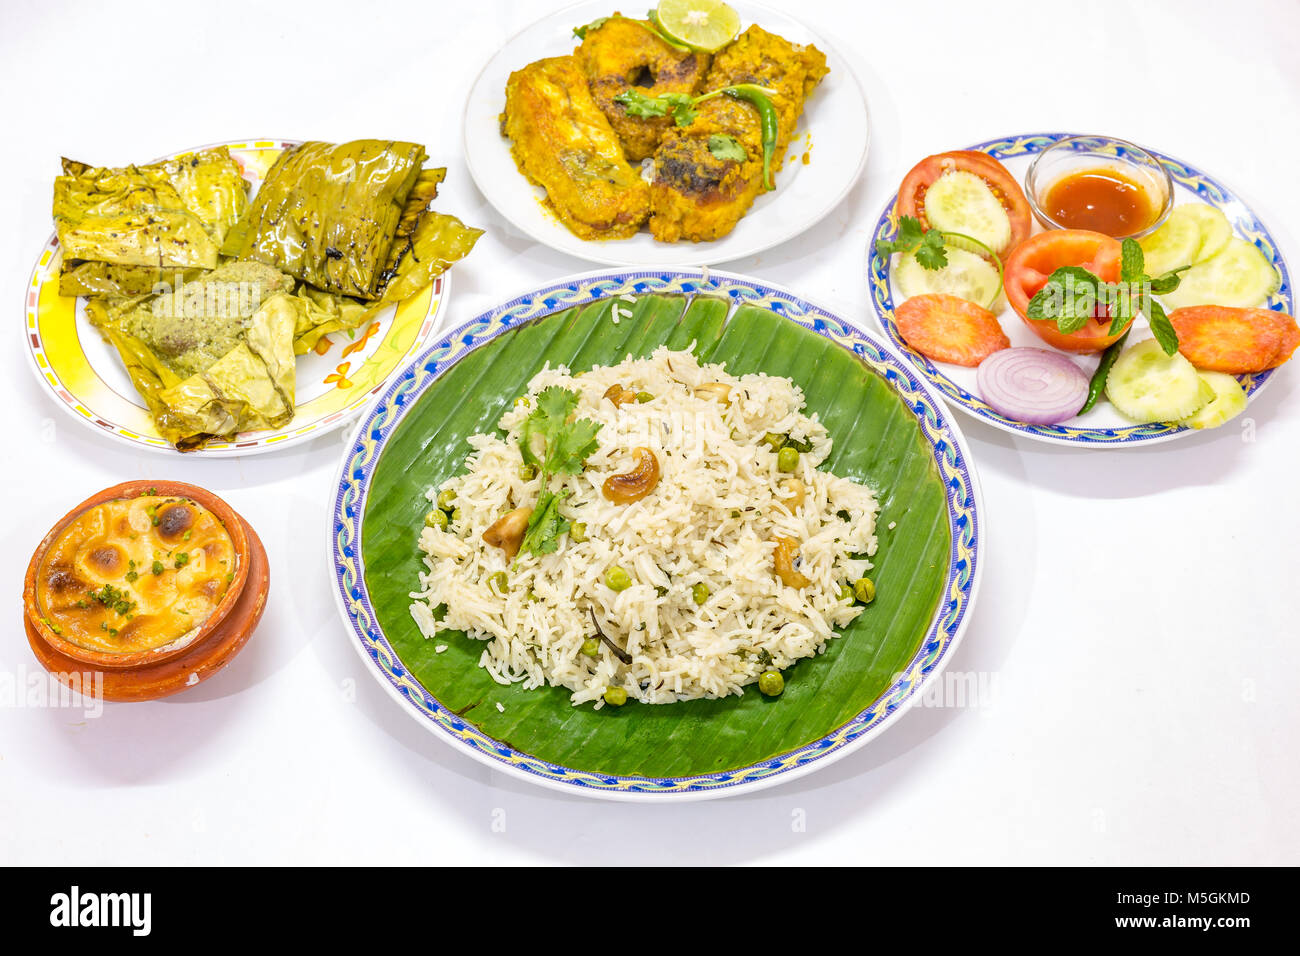 Popular delicious Bengali Indian cuisine meal with vegetable fried rice , spicy fish curry, salads and sweet dish. - Stock Image